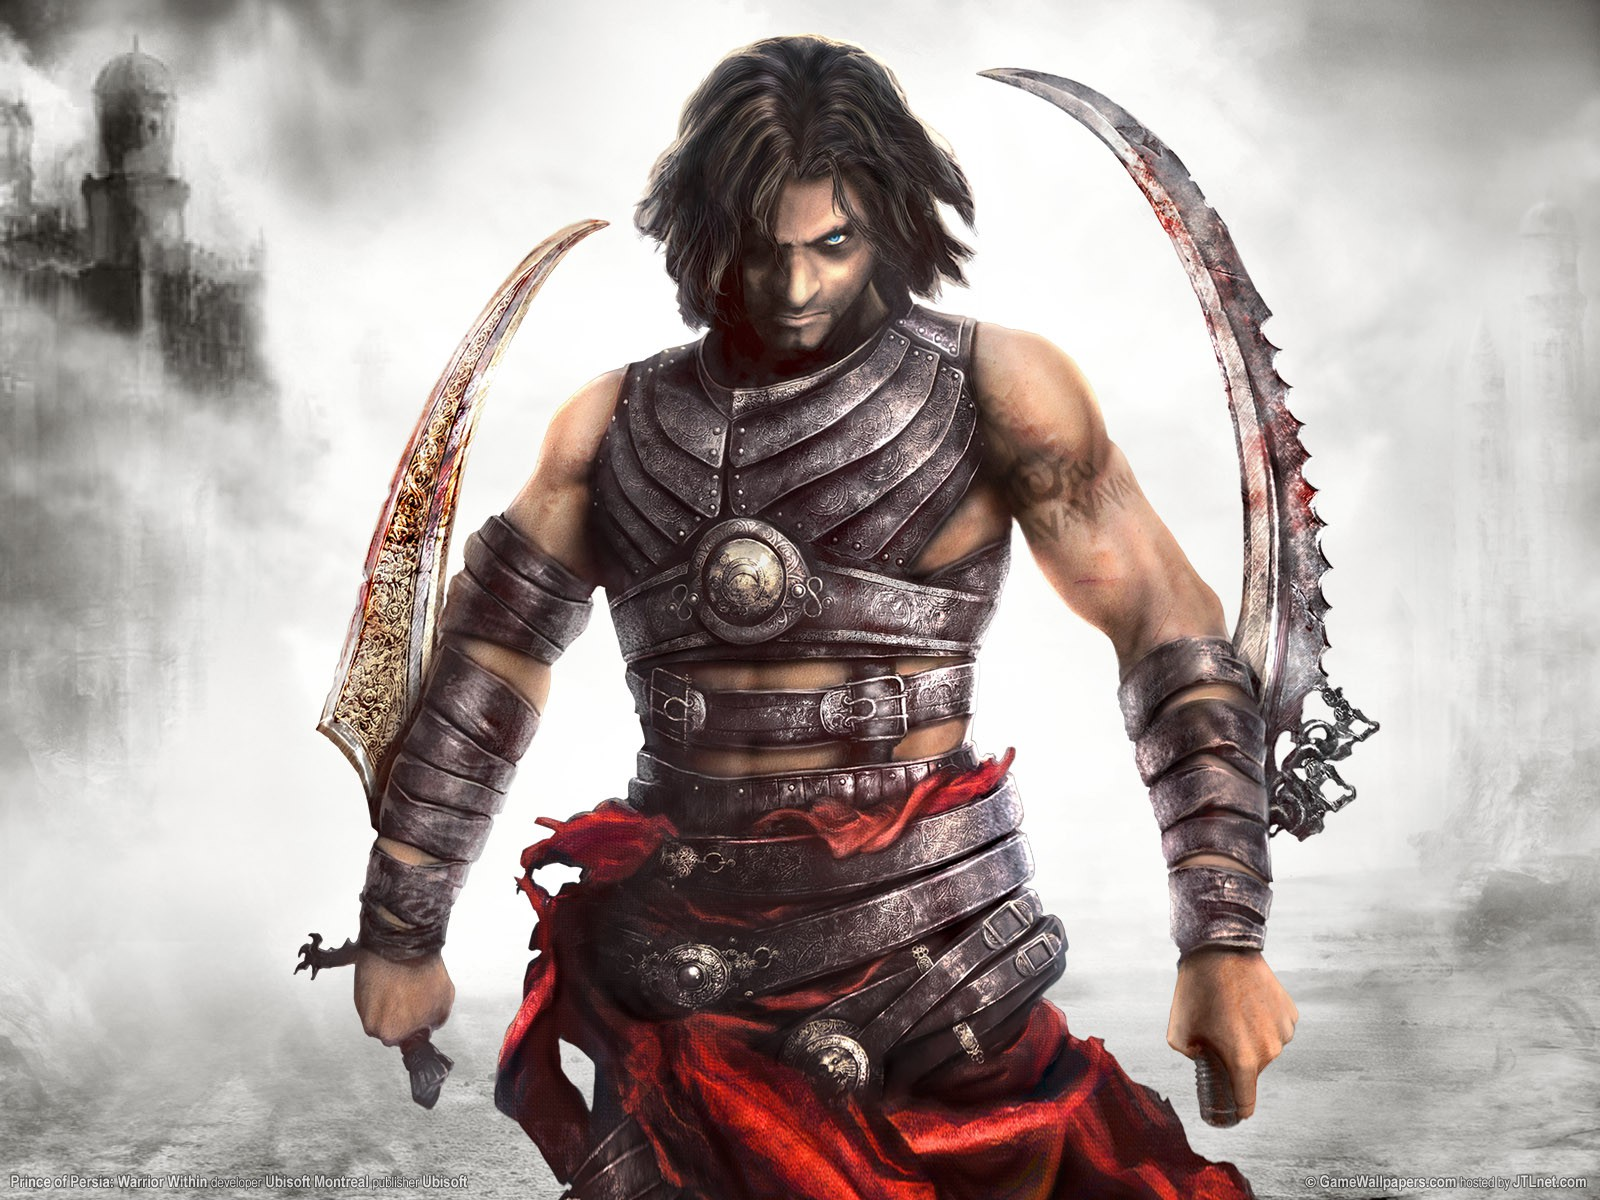 prince_of_persia_warrior_within_001.jpg